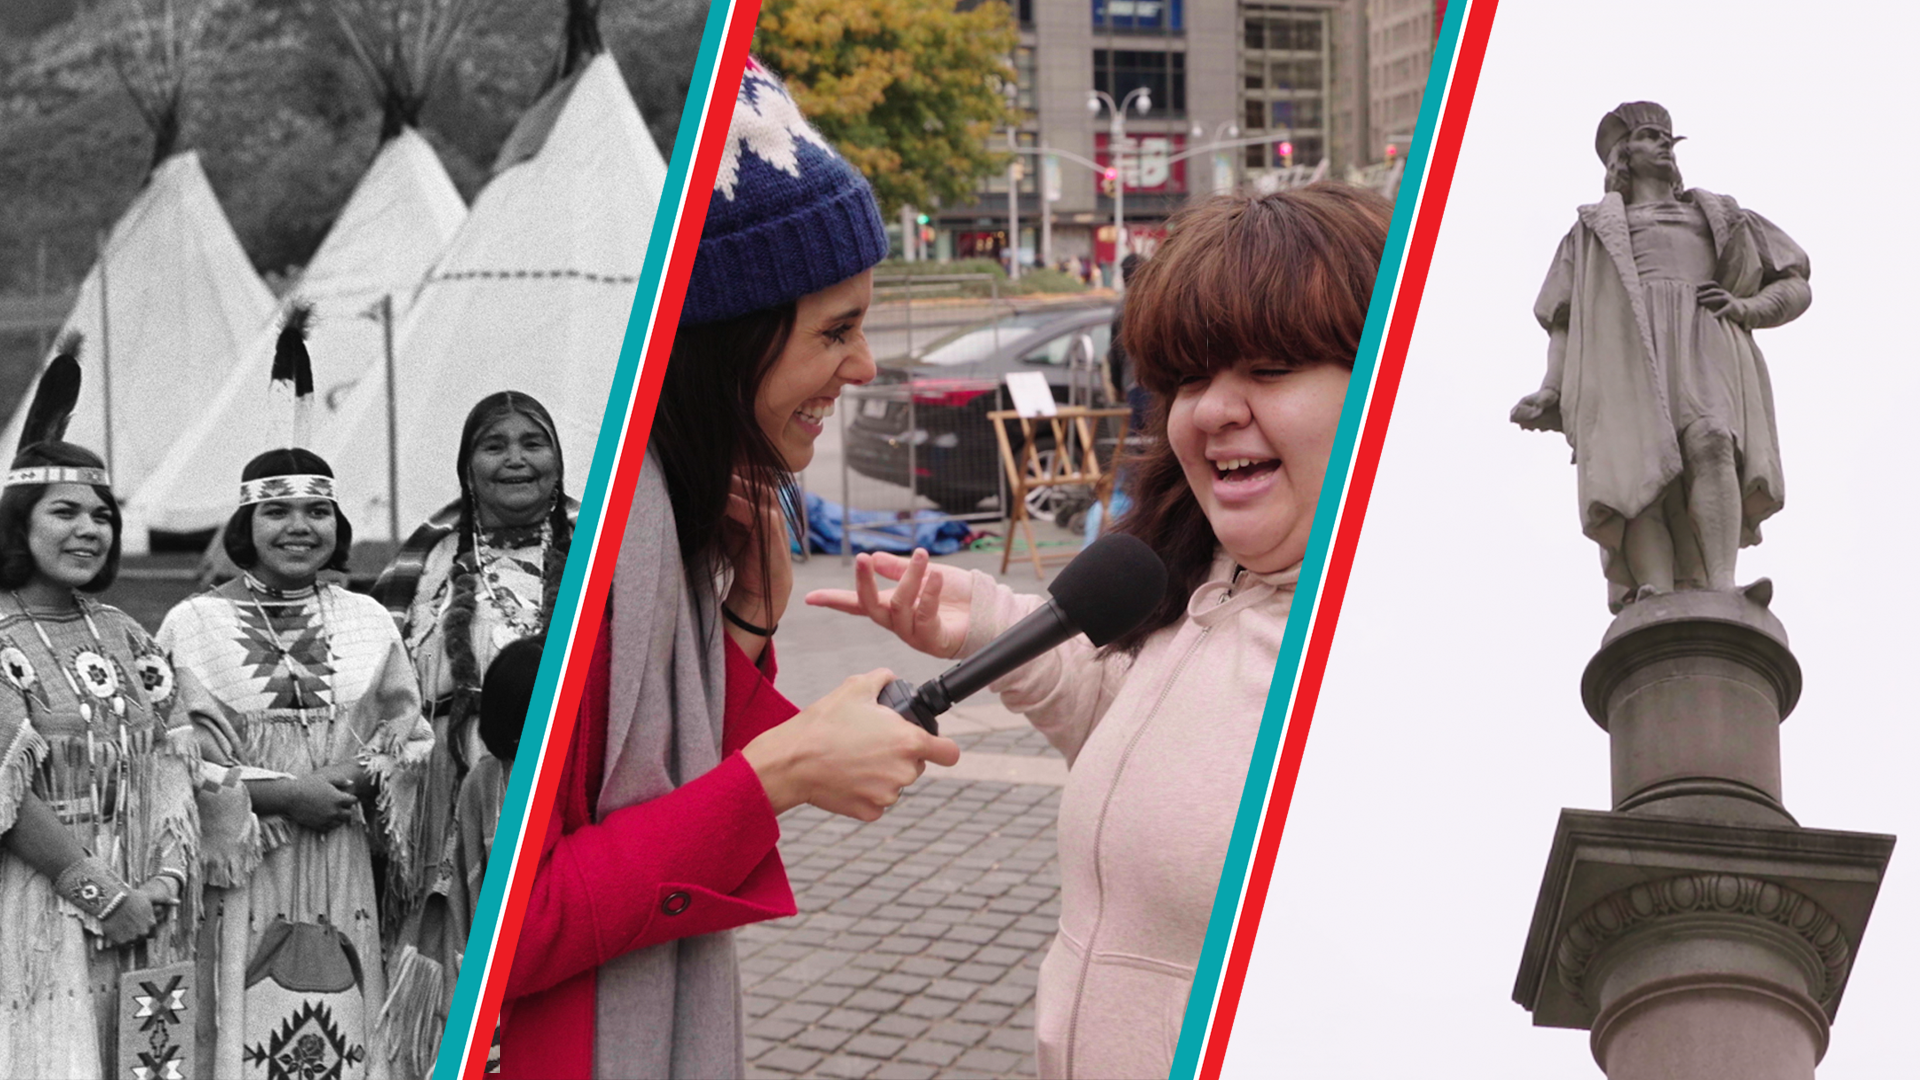 Liz Plank interviews New Yorkers about the lack of women monuments